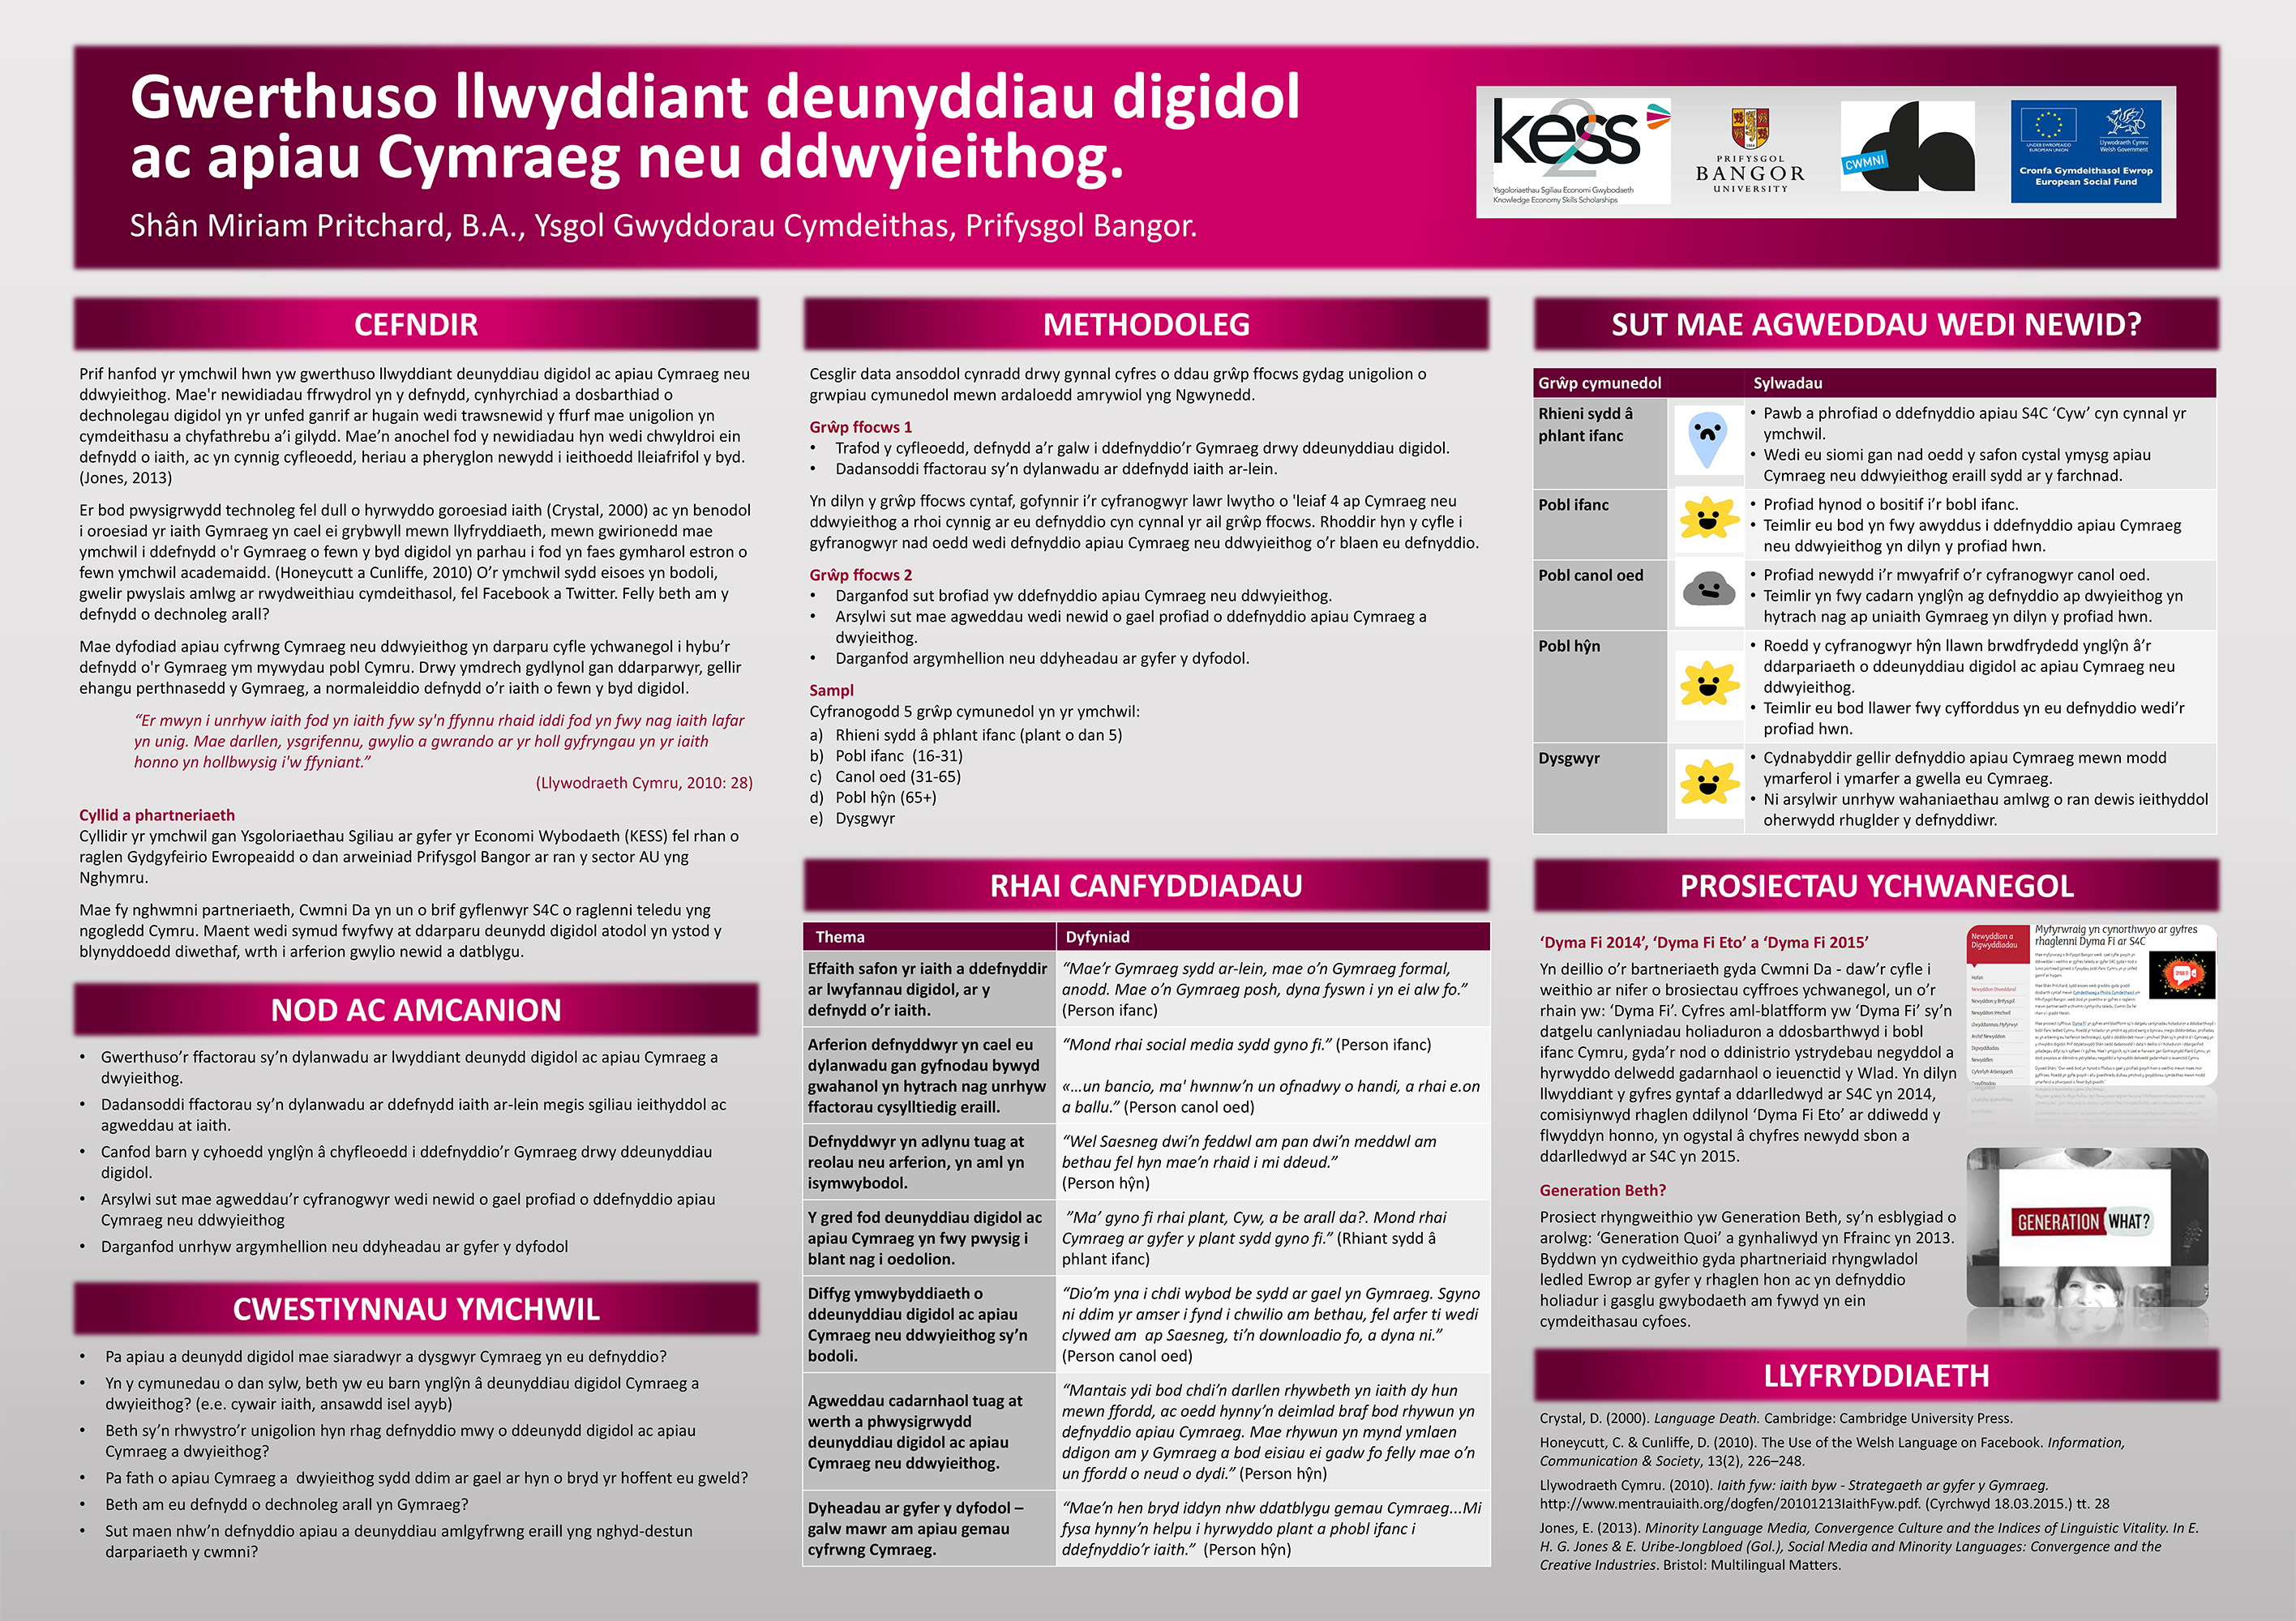 This Research Project Discusses The Use Of The Welsh Language Within The  Digital World, For A Postgraduatecourse, Which Has Been Funded By A KESS ...